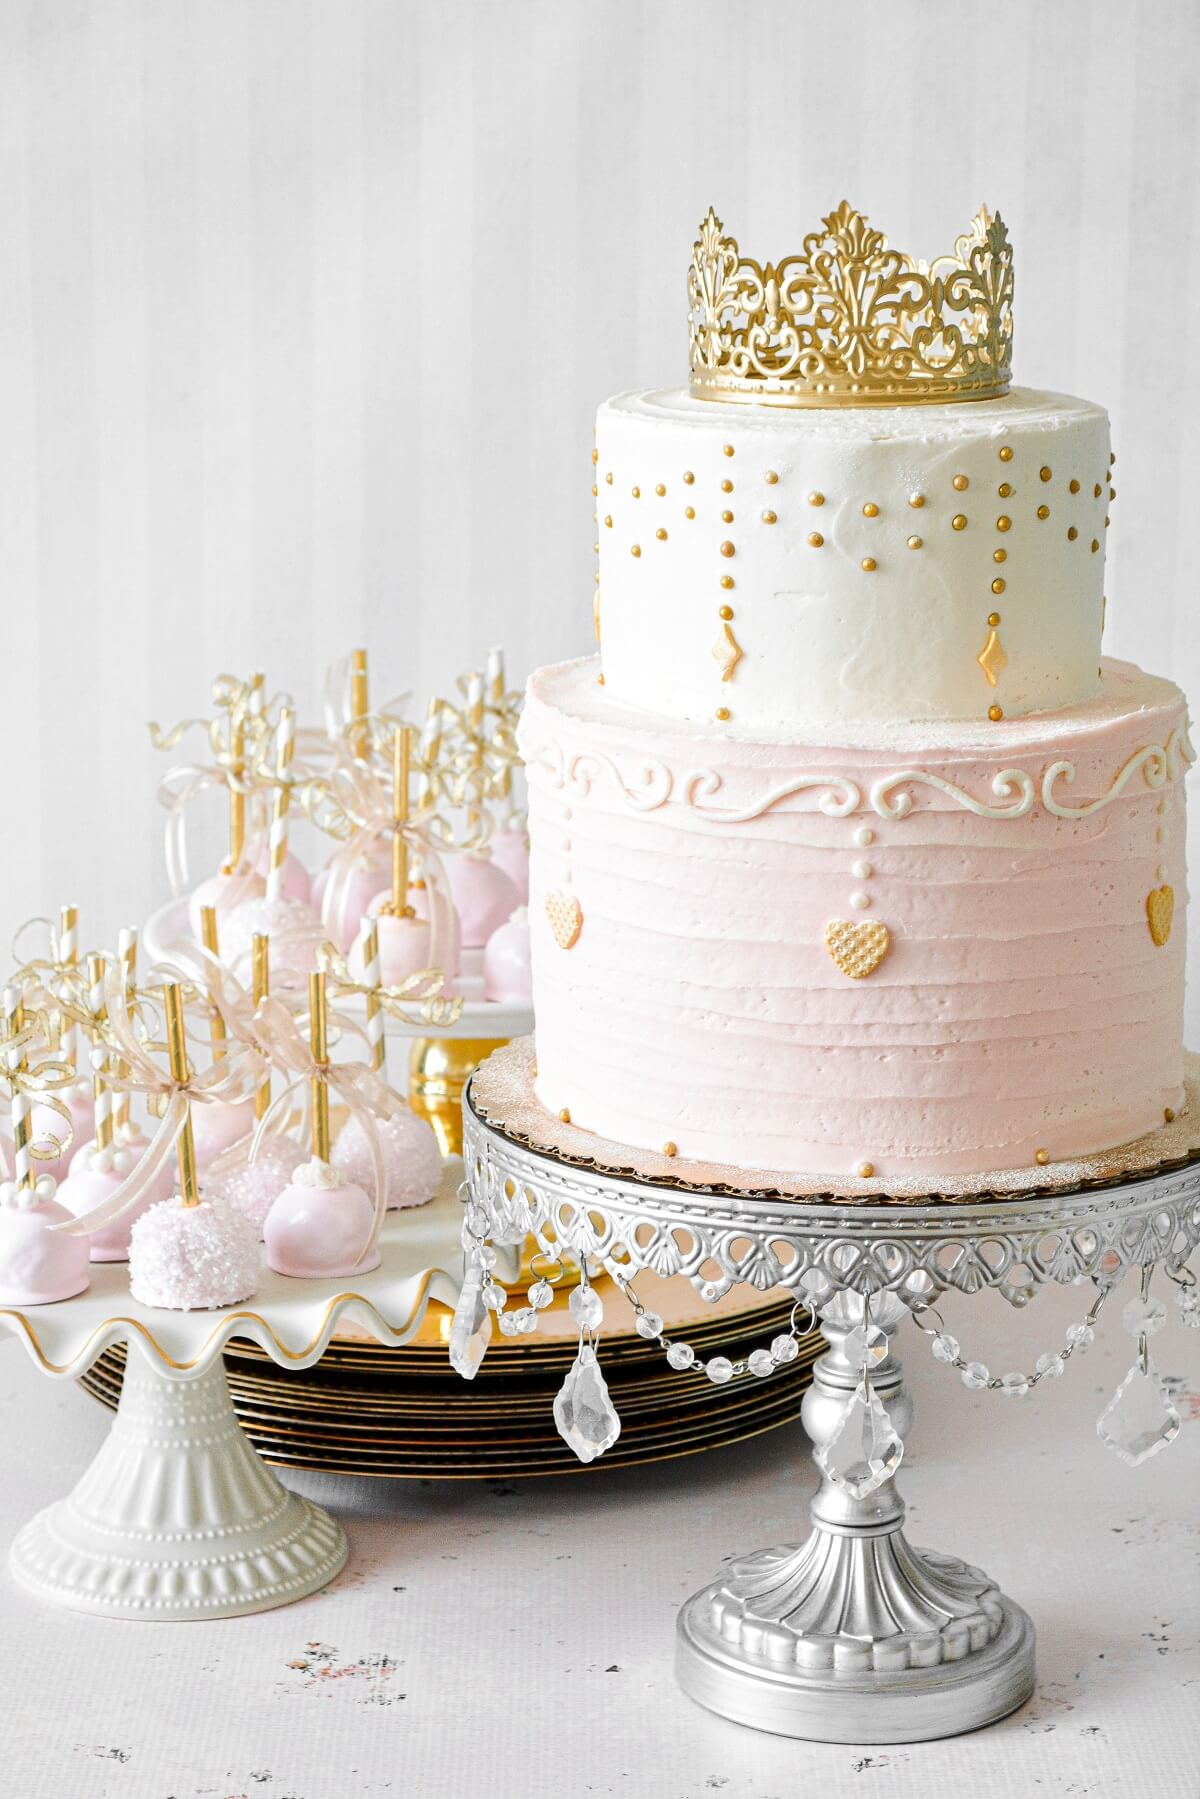 Pink and gold princess party cake with a gold crown topper.